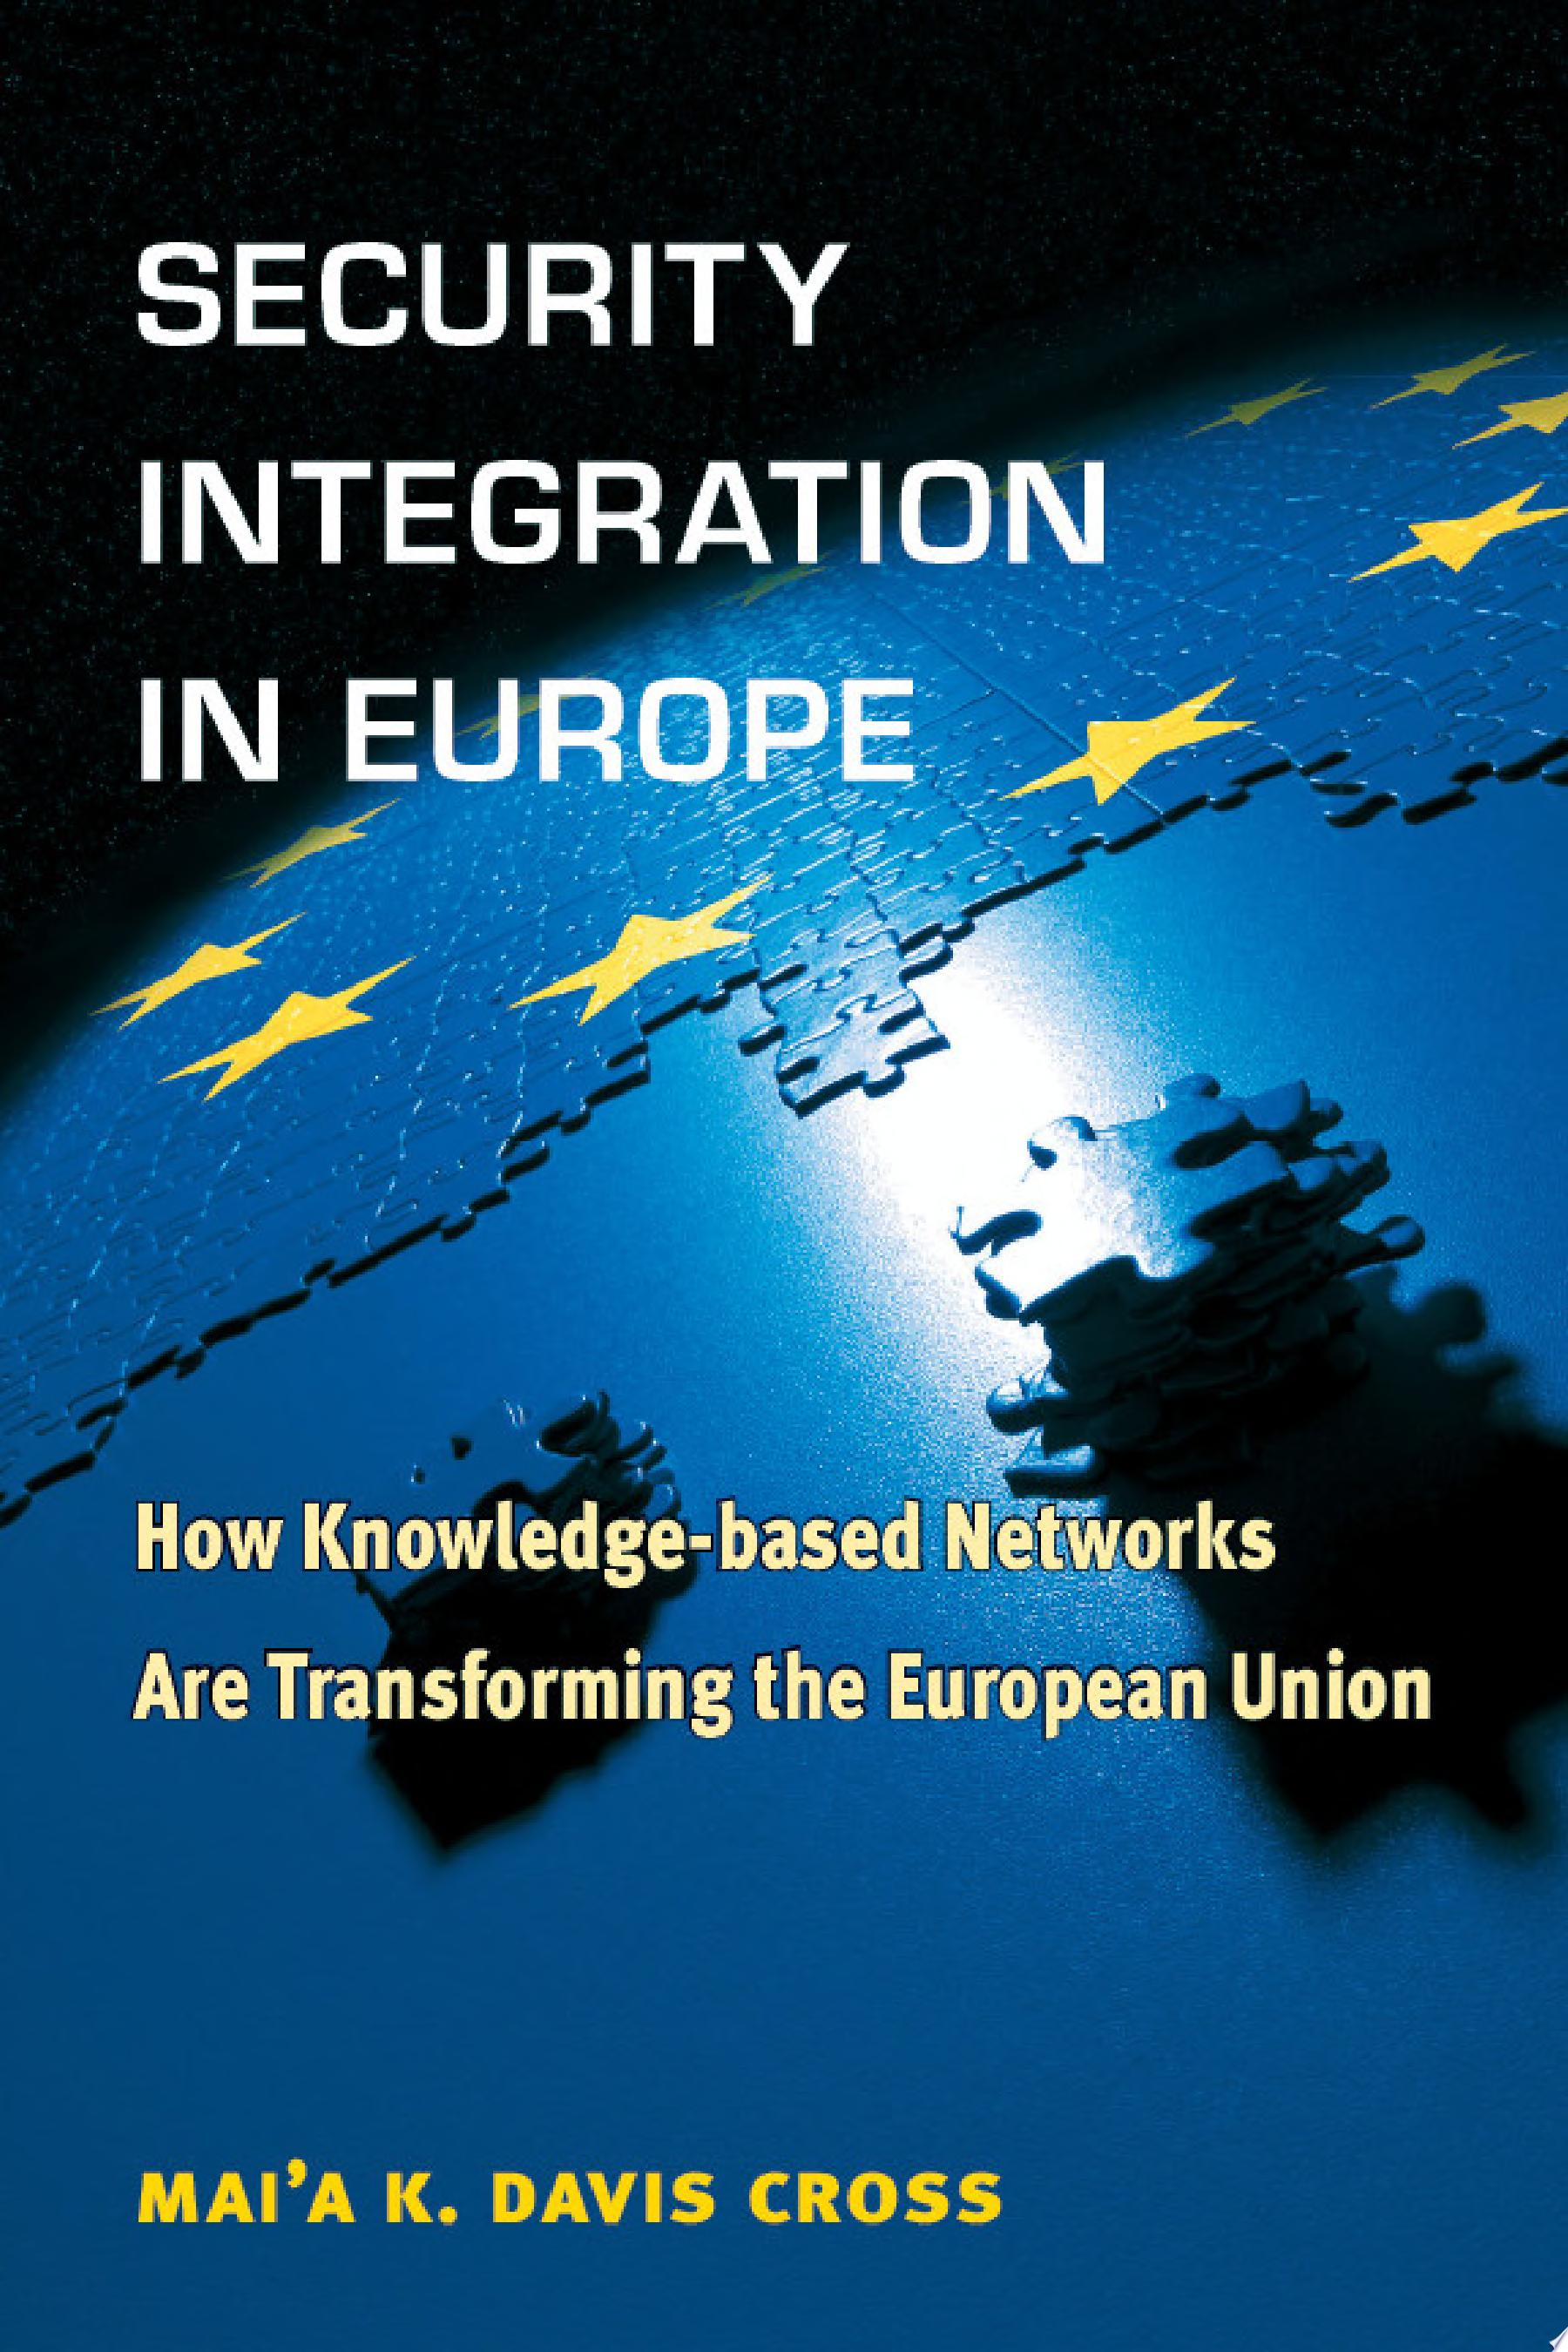 Security Integration in Europe